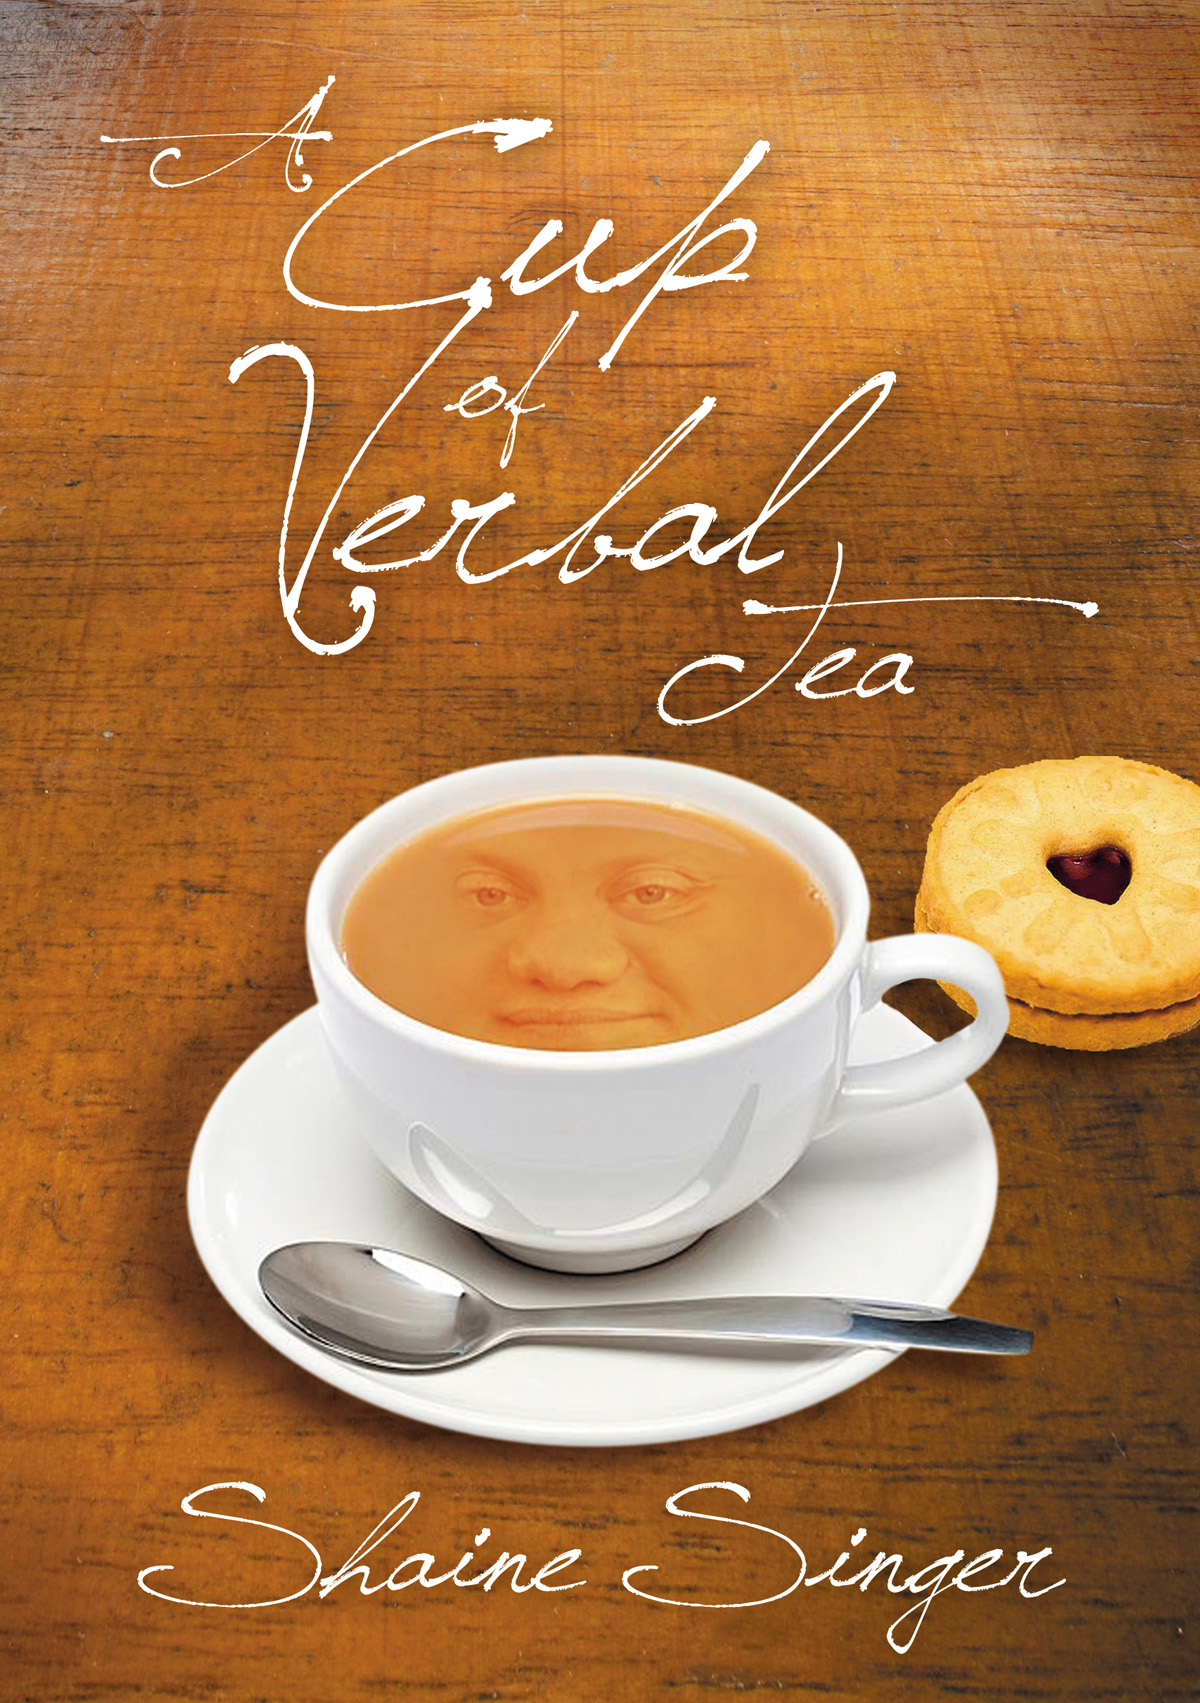 A Cup of Verbal Tea